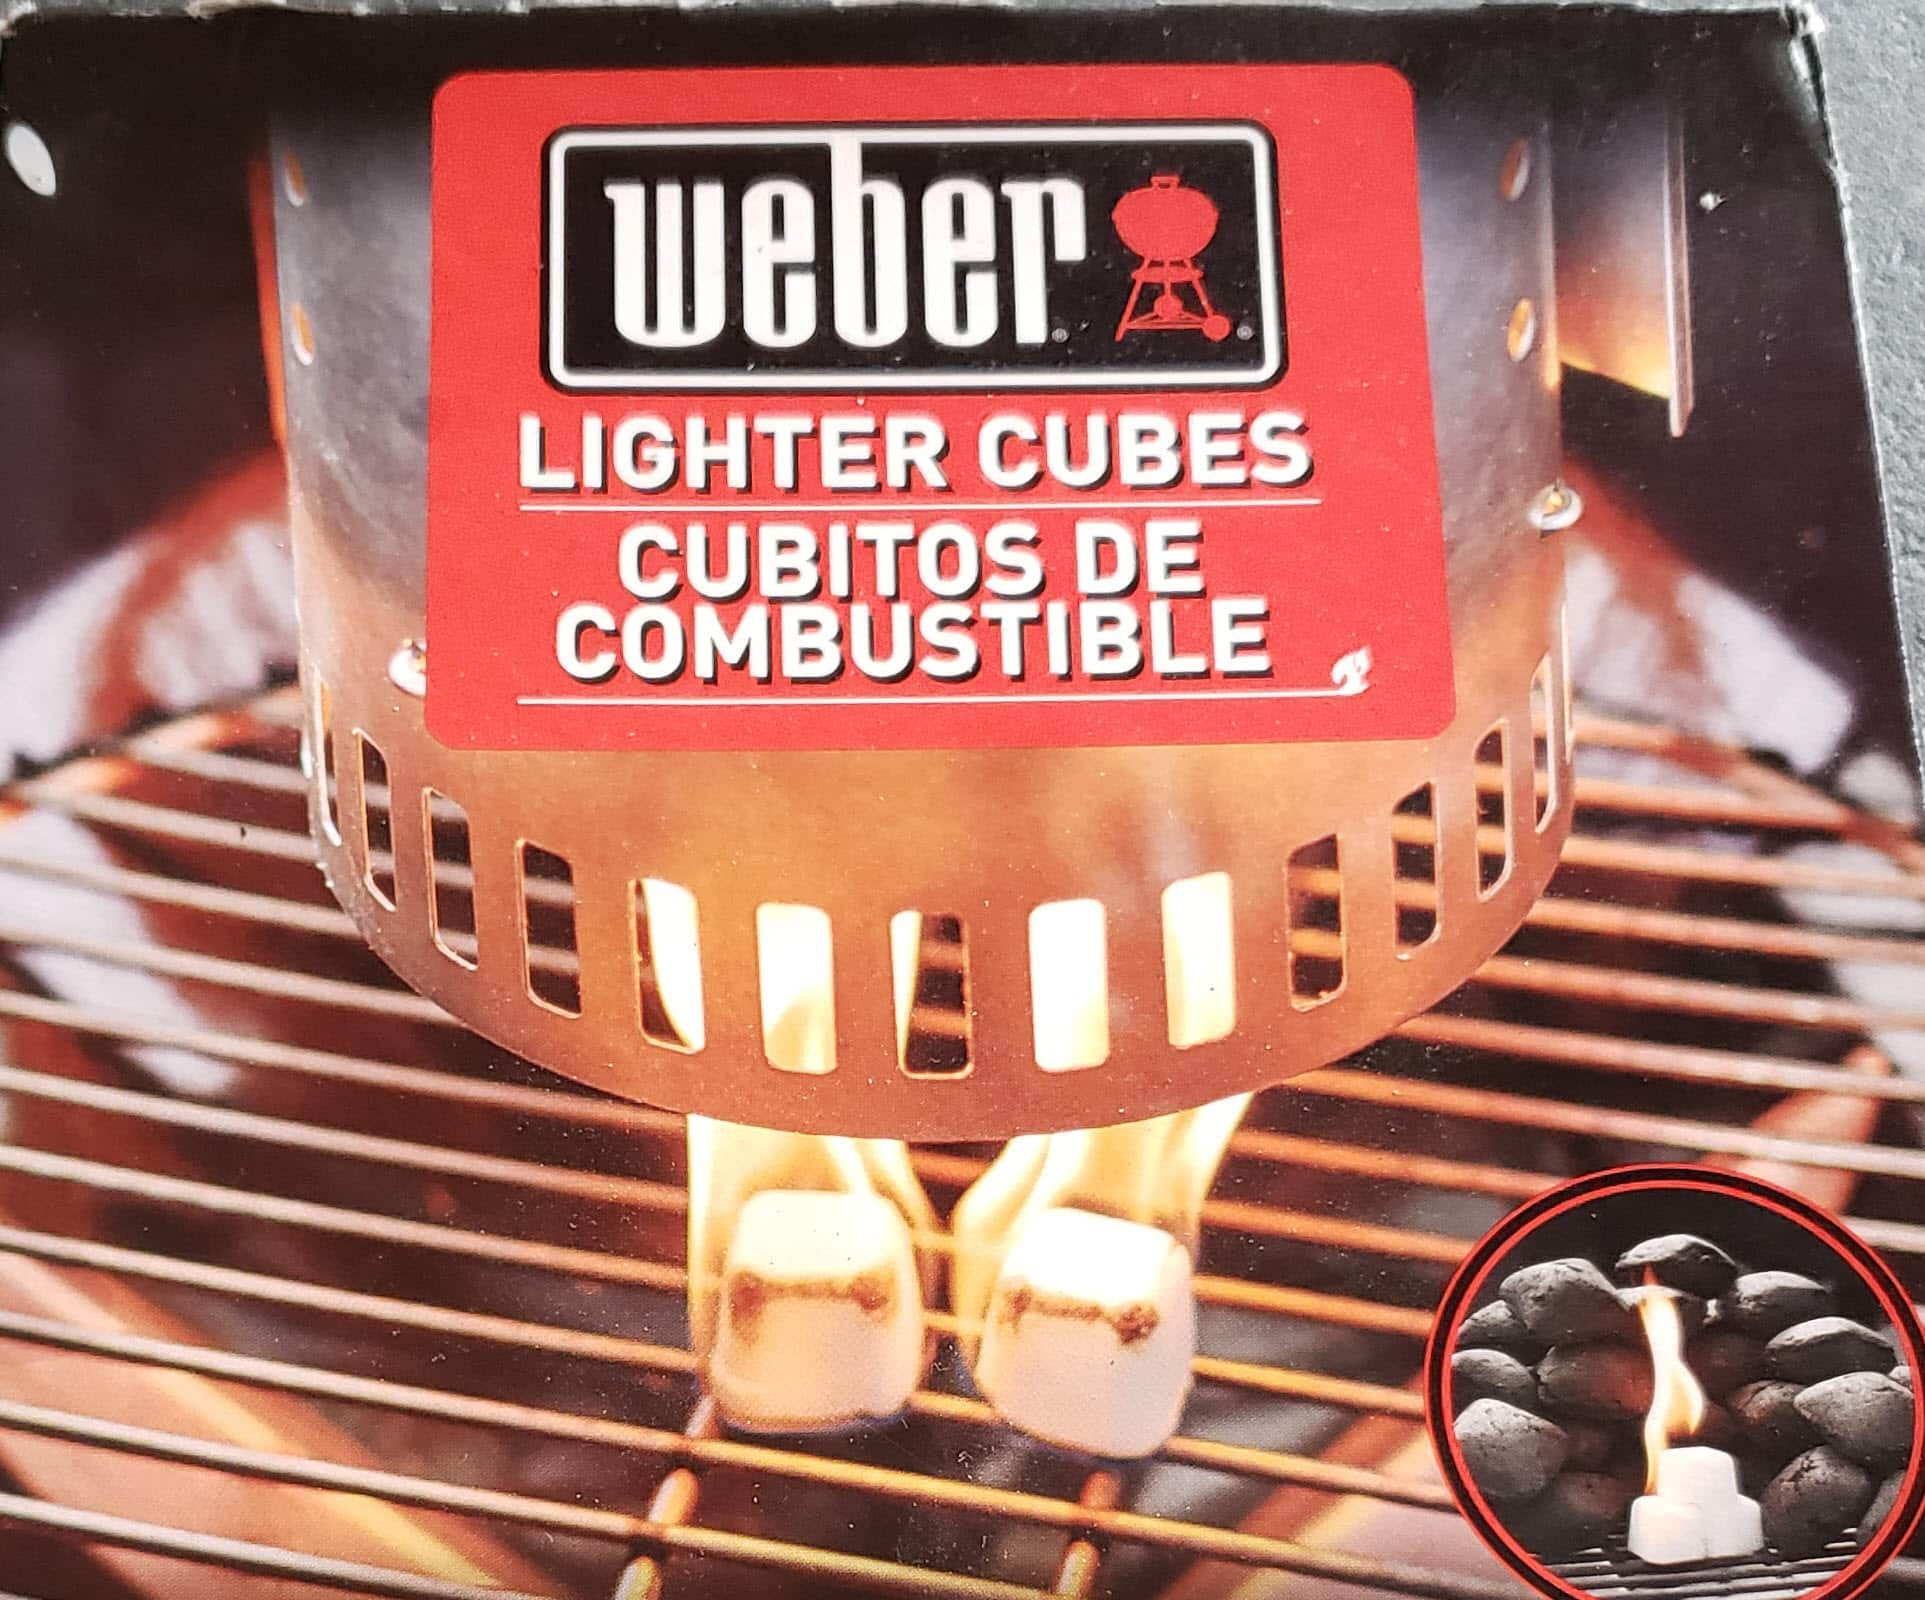 Weber Lighter Cubes